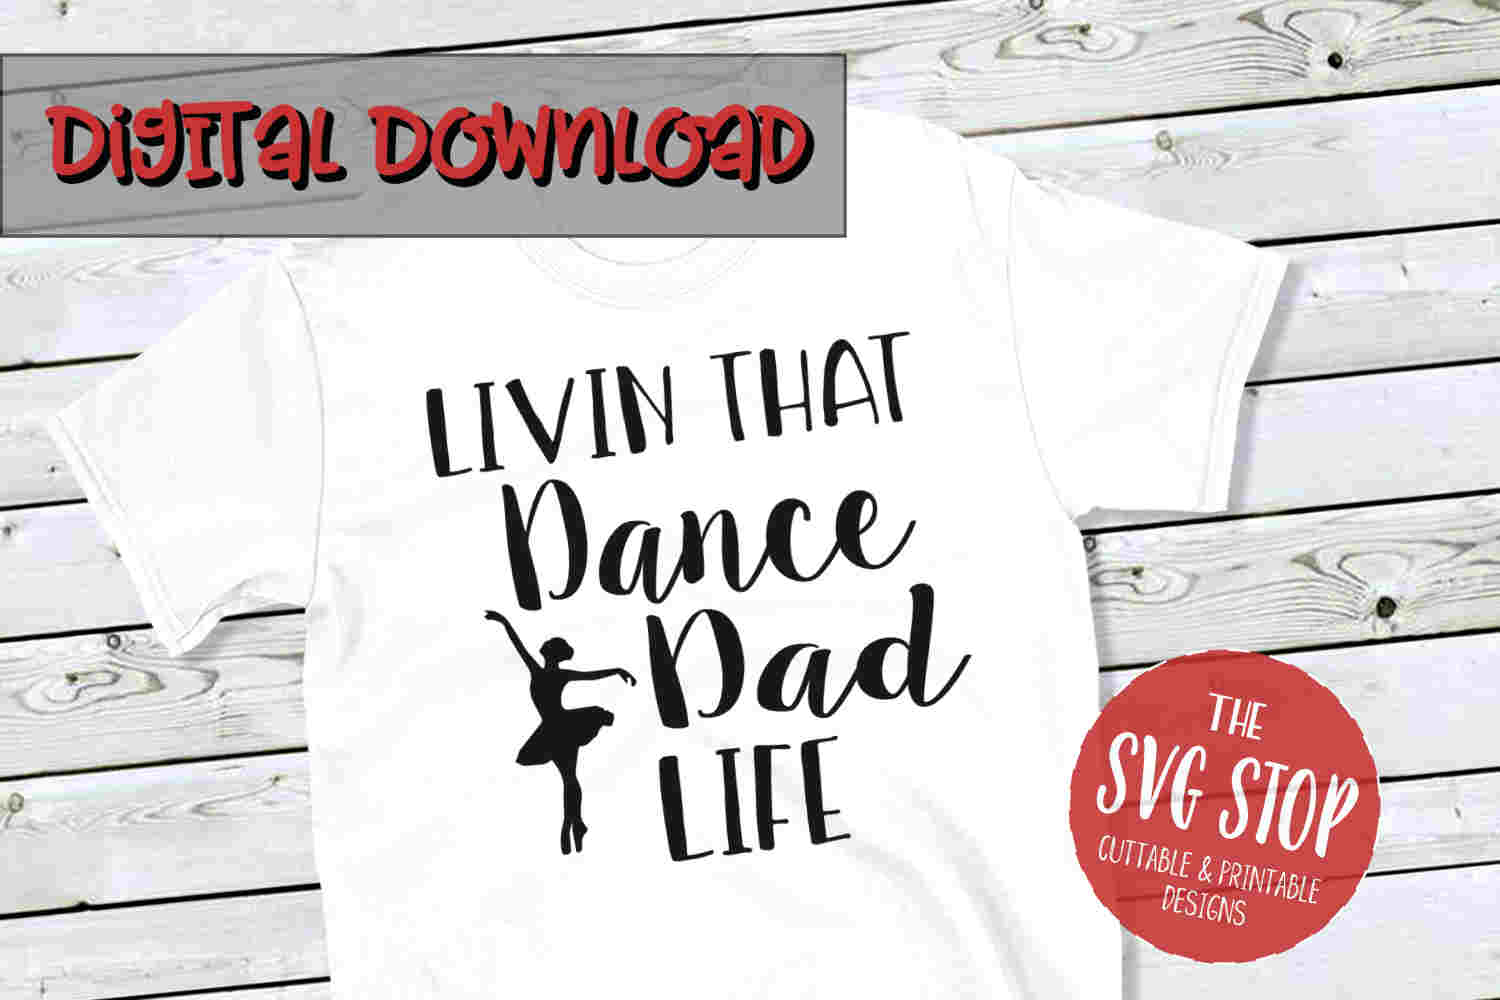 Dance Dad Life -SVG, PNG, DXF example image 1